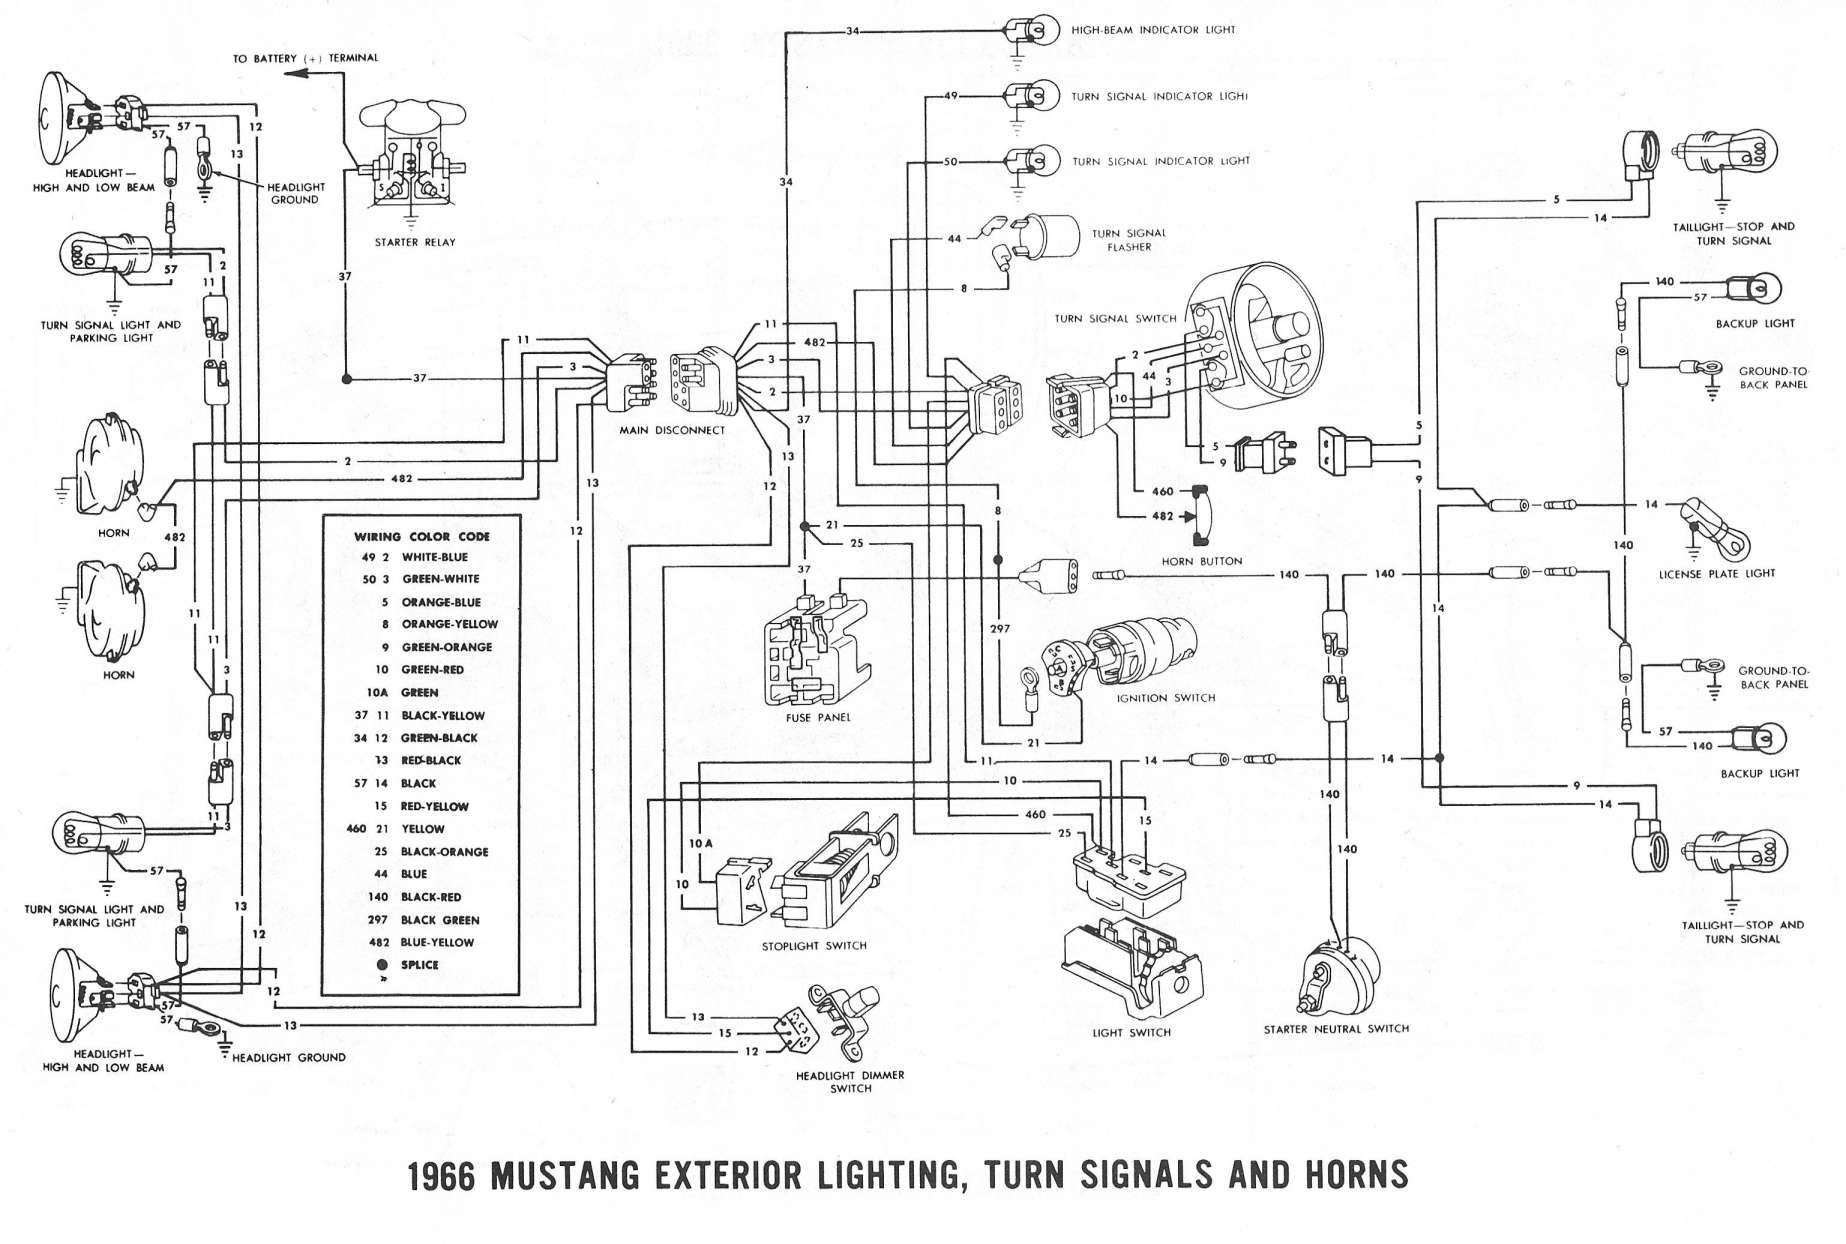 Mustang Flasher Diagram Wiring Schematic